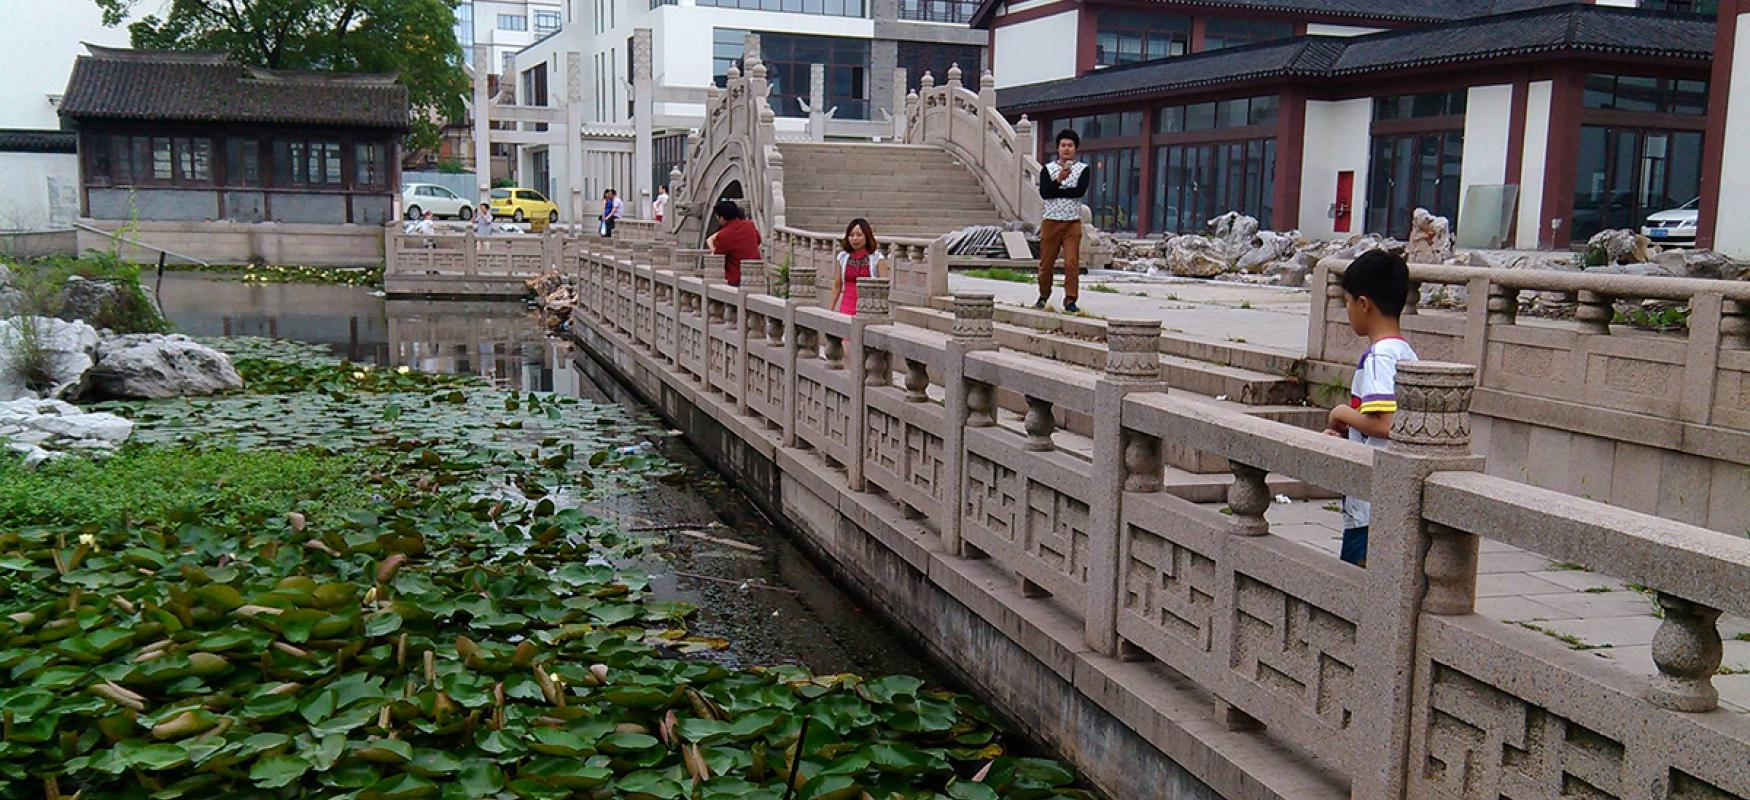 Some children and one adult look at green plants in the river in Changshu, China.